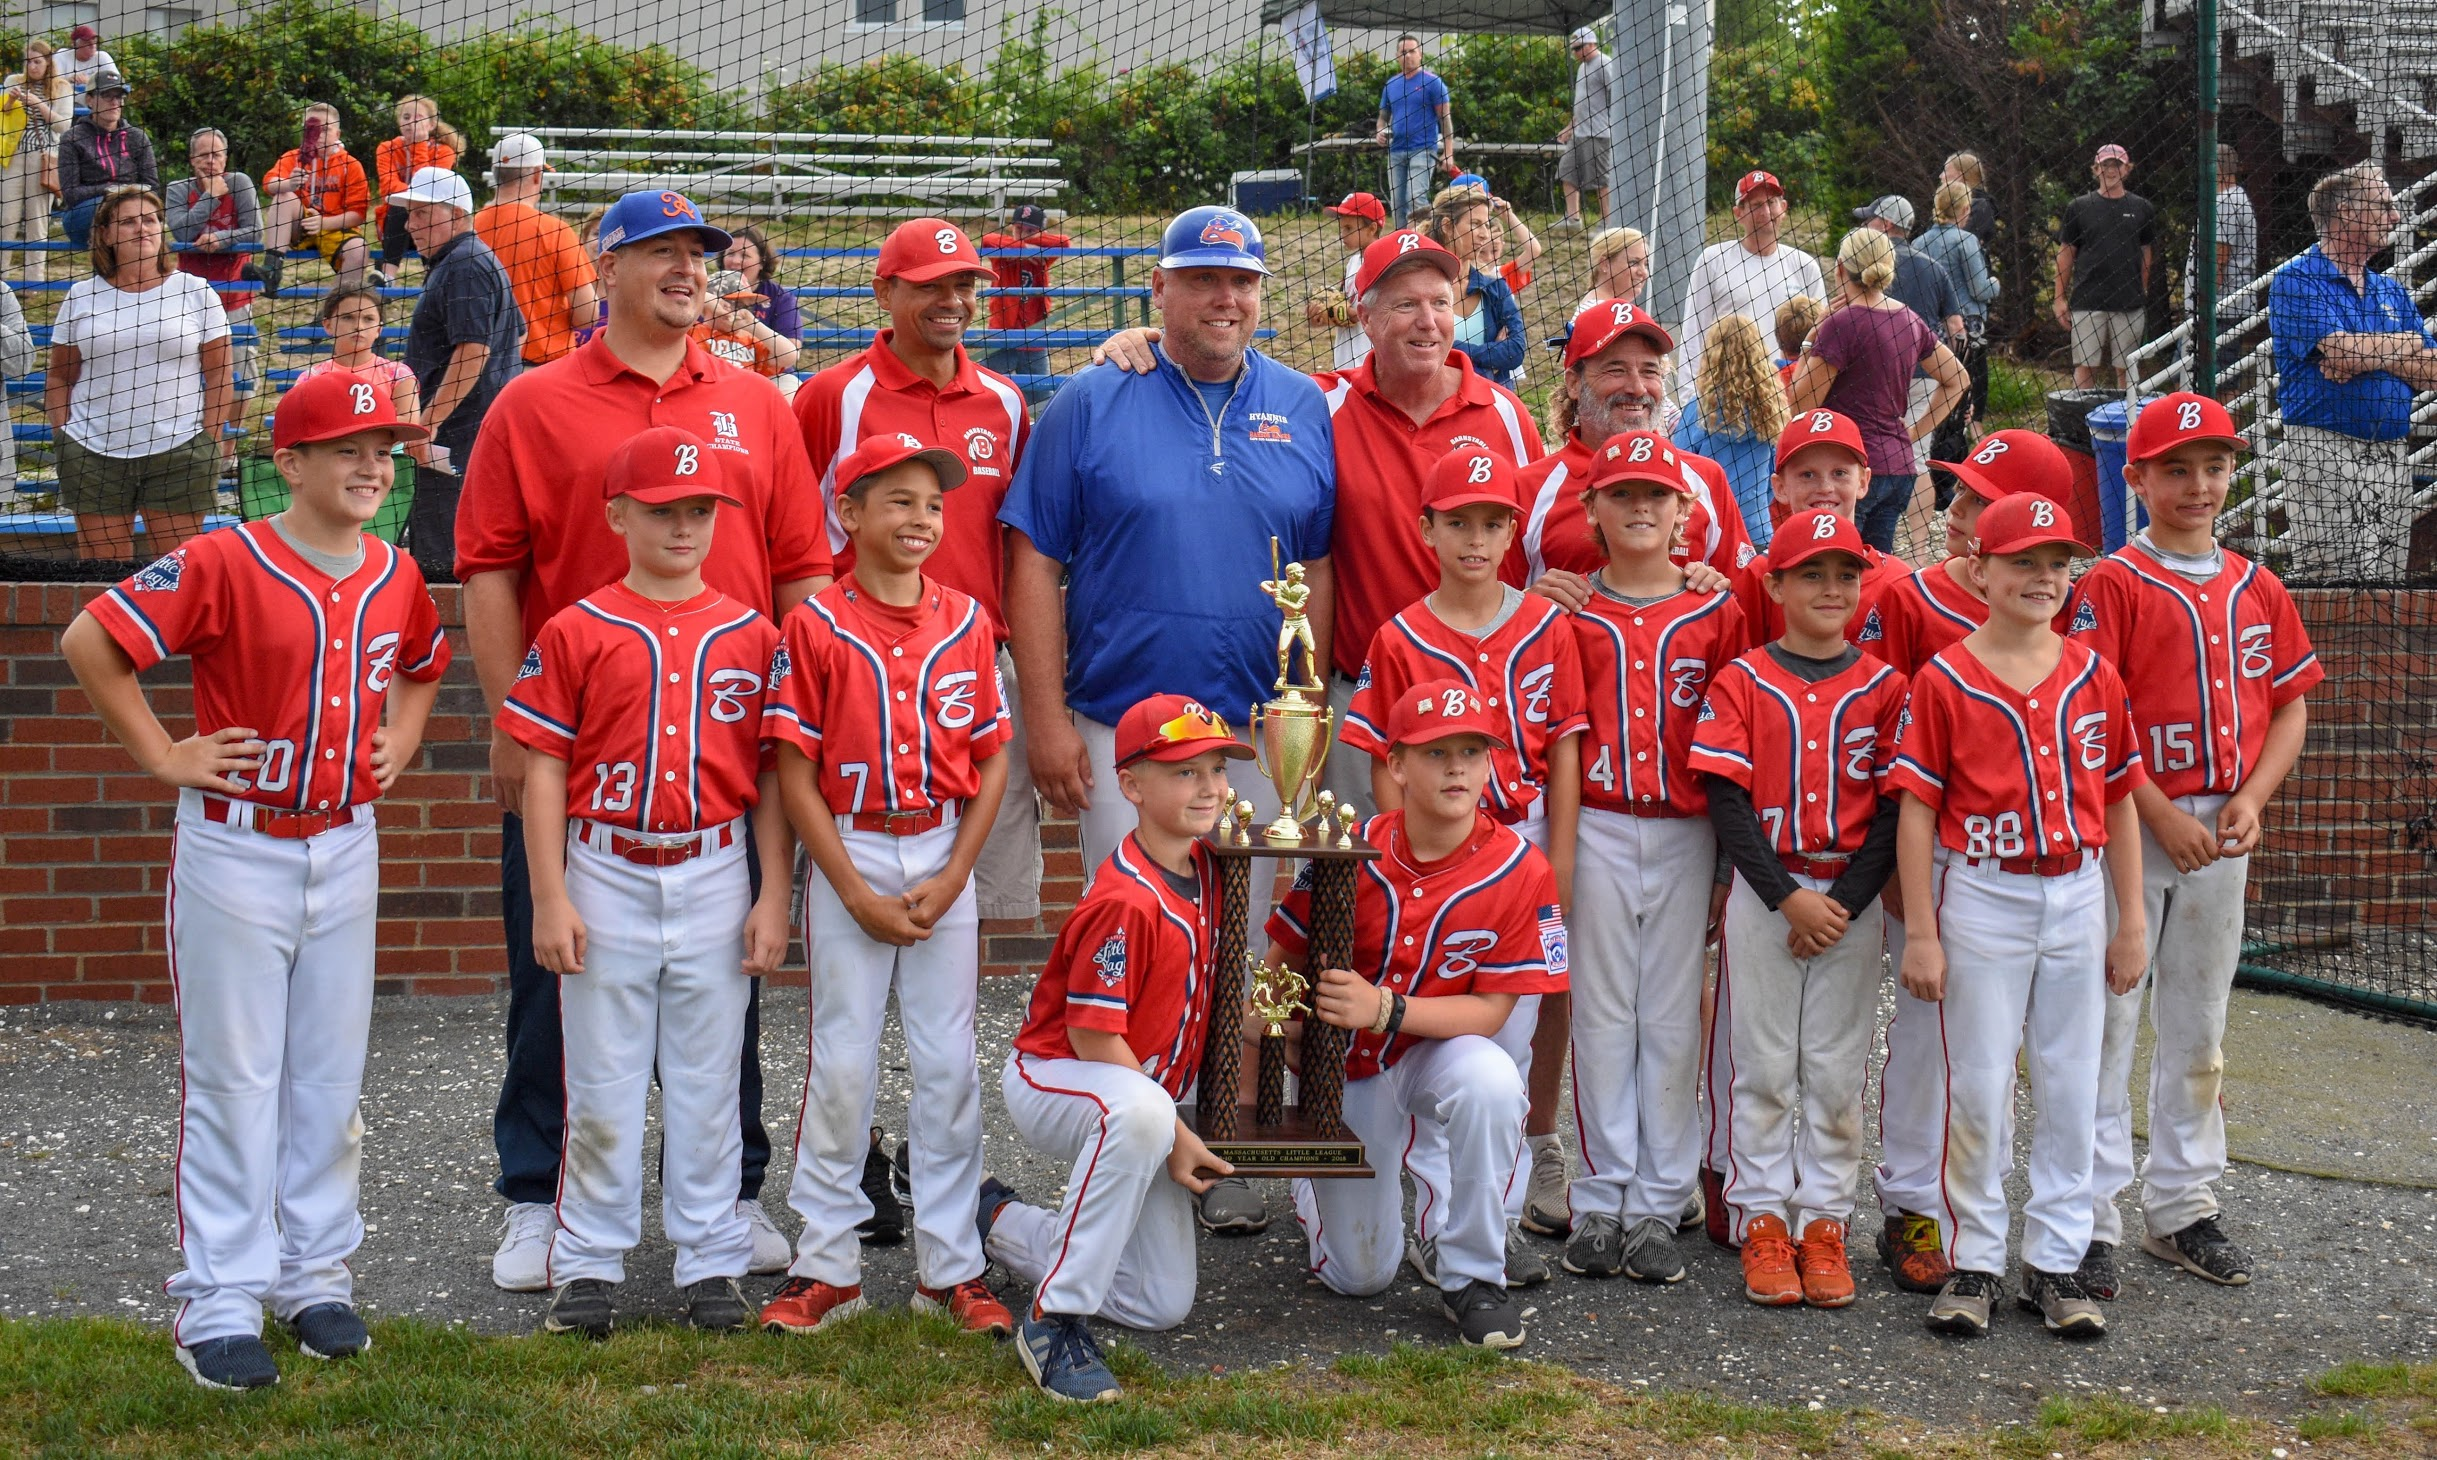 Now former Hyannis Harbor Hawk Manager Chad Gassman stands with Barnstable Little League players. Gassman announced his resignation on Friday to become the Athletic Director at Waldorf University in Iowa.  Photo Courtesy of the Hyannis Harbor Hawks.